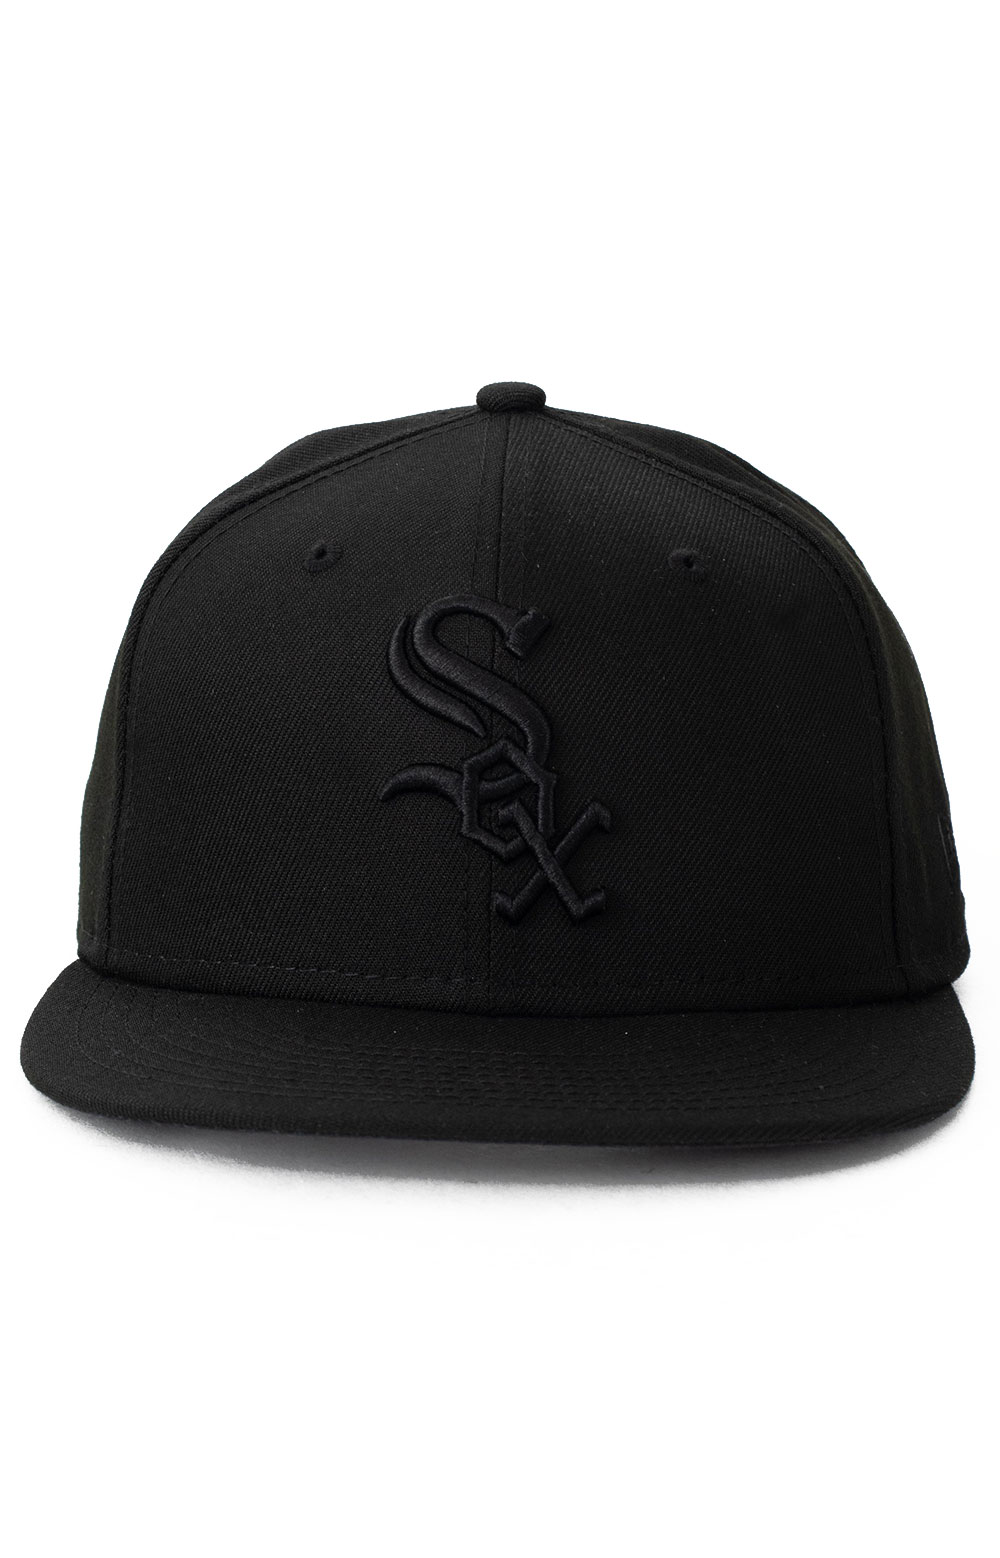 9Fifty Color Pack Snap-Back Hat - Chicago White Sox Black  2